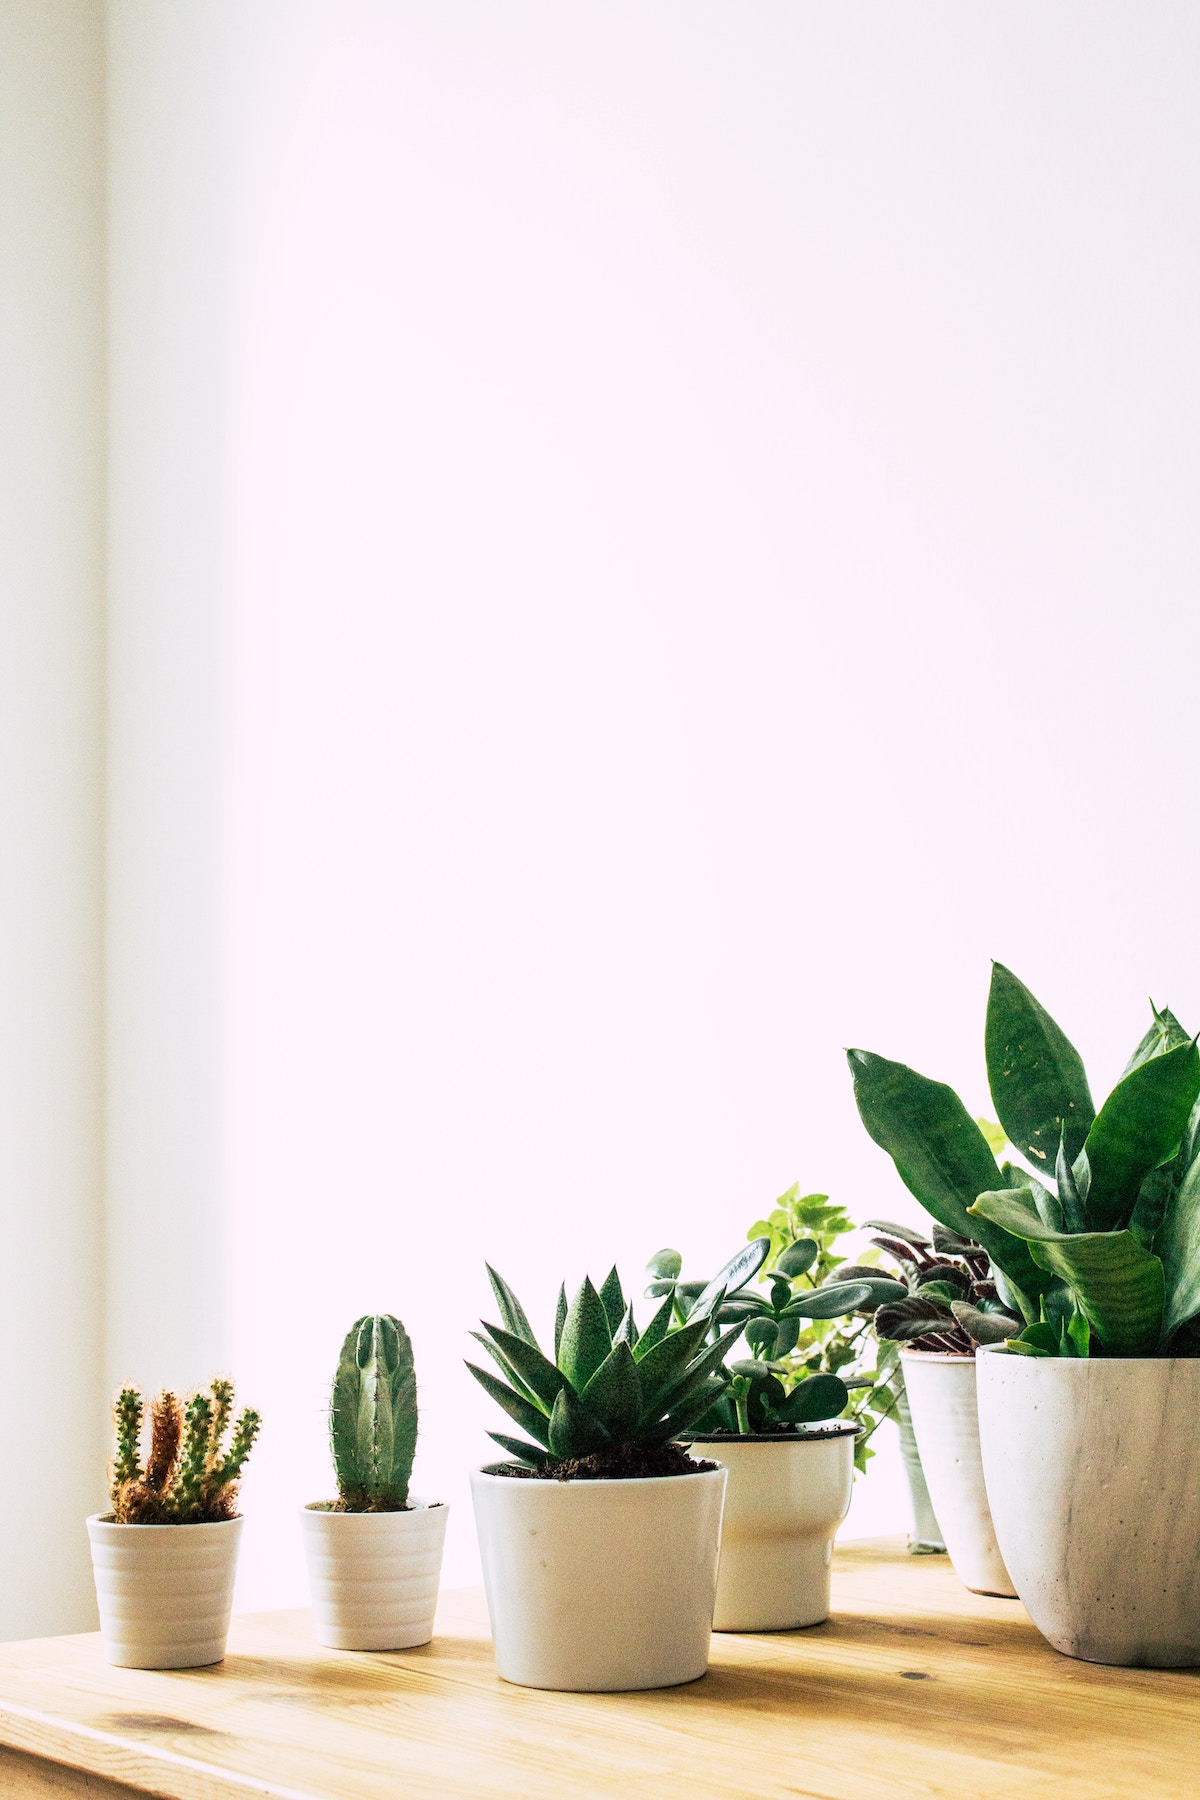 Mini cacti and succulents on a table